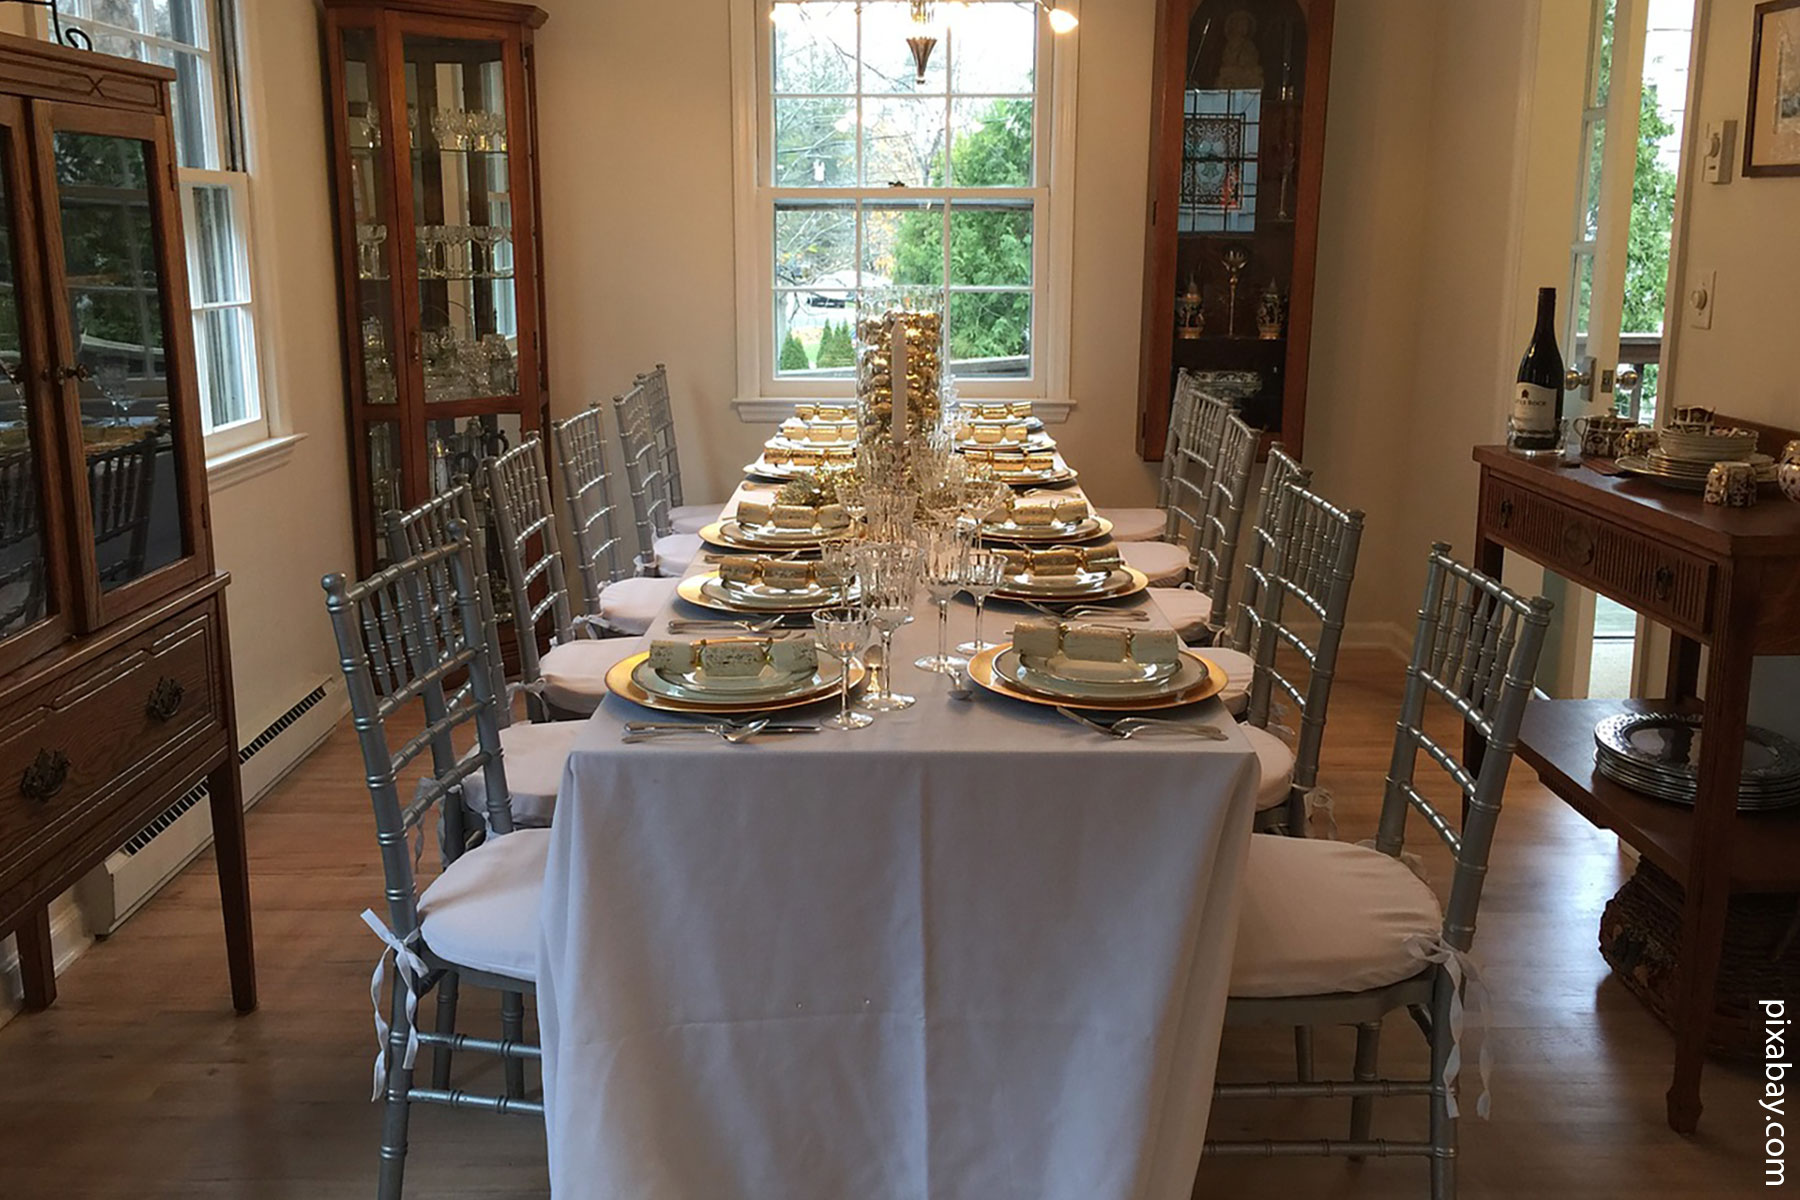 1 in 3 Parents Say Holiday Gathering Worth COVID Risk